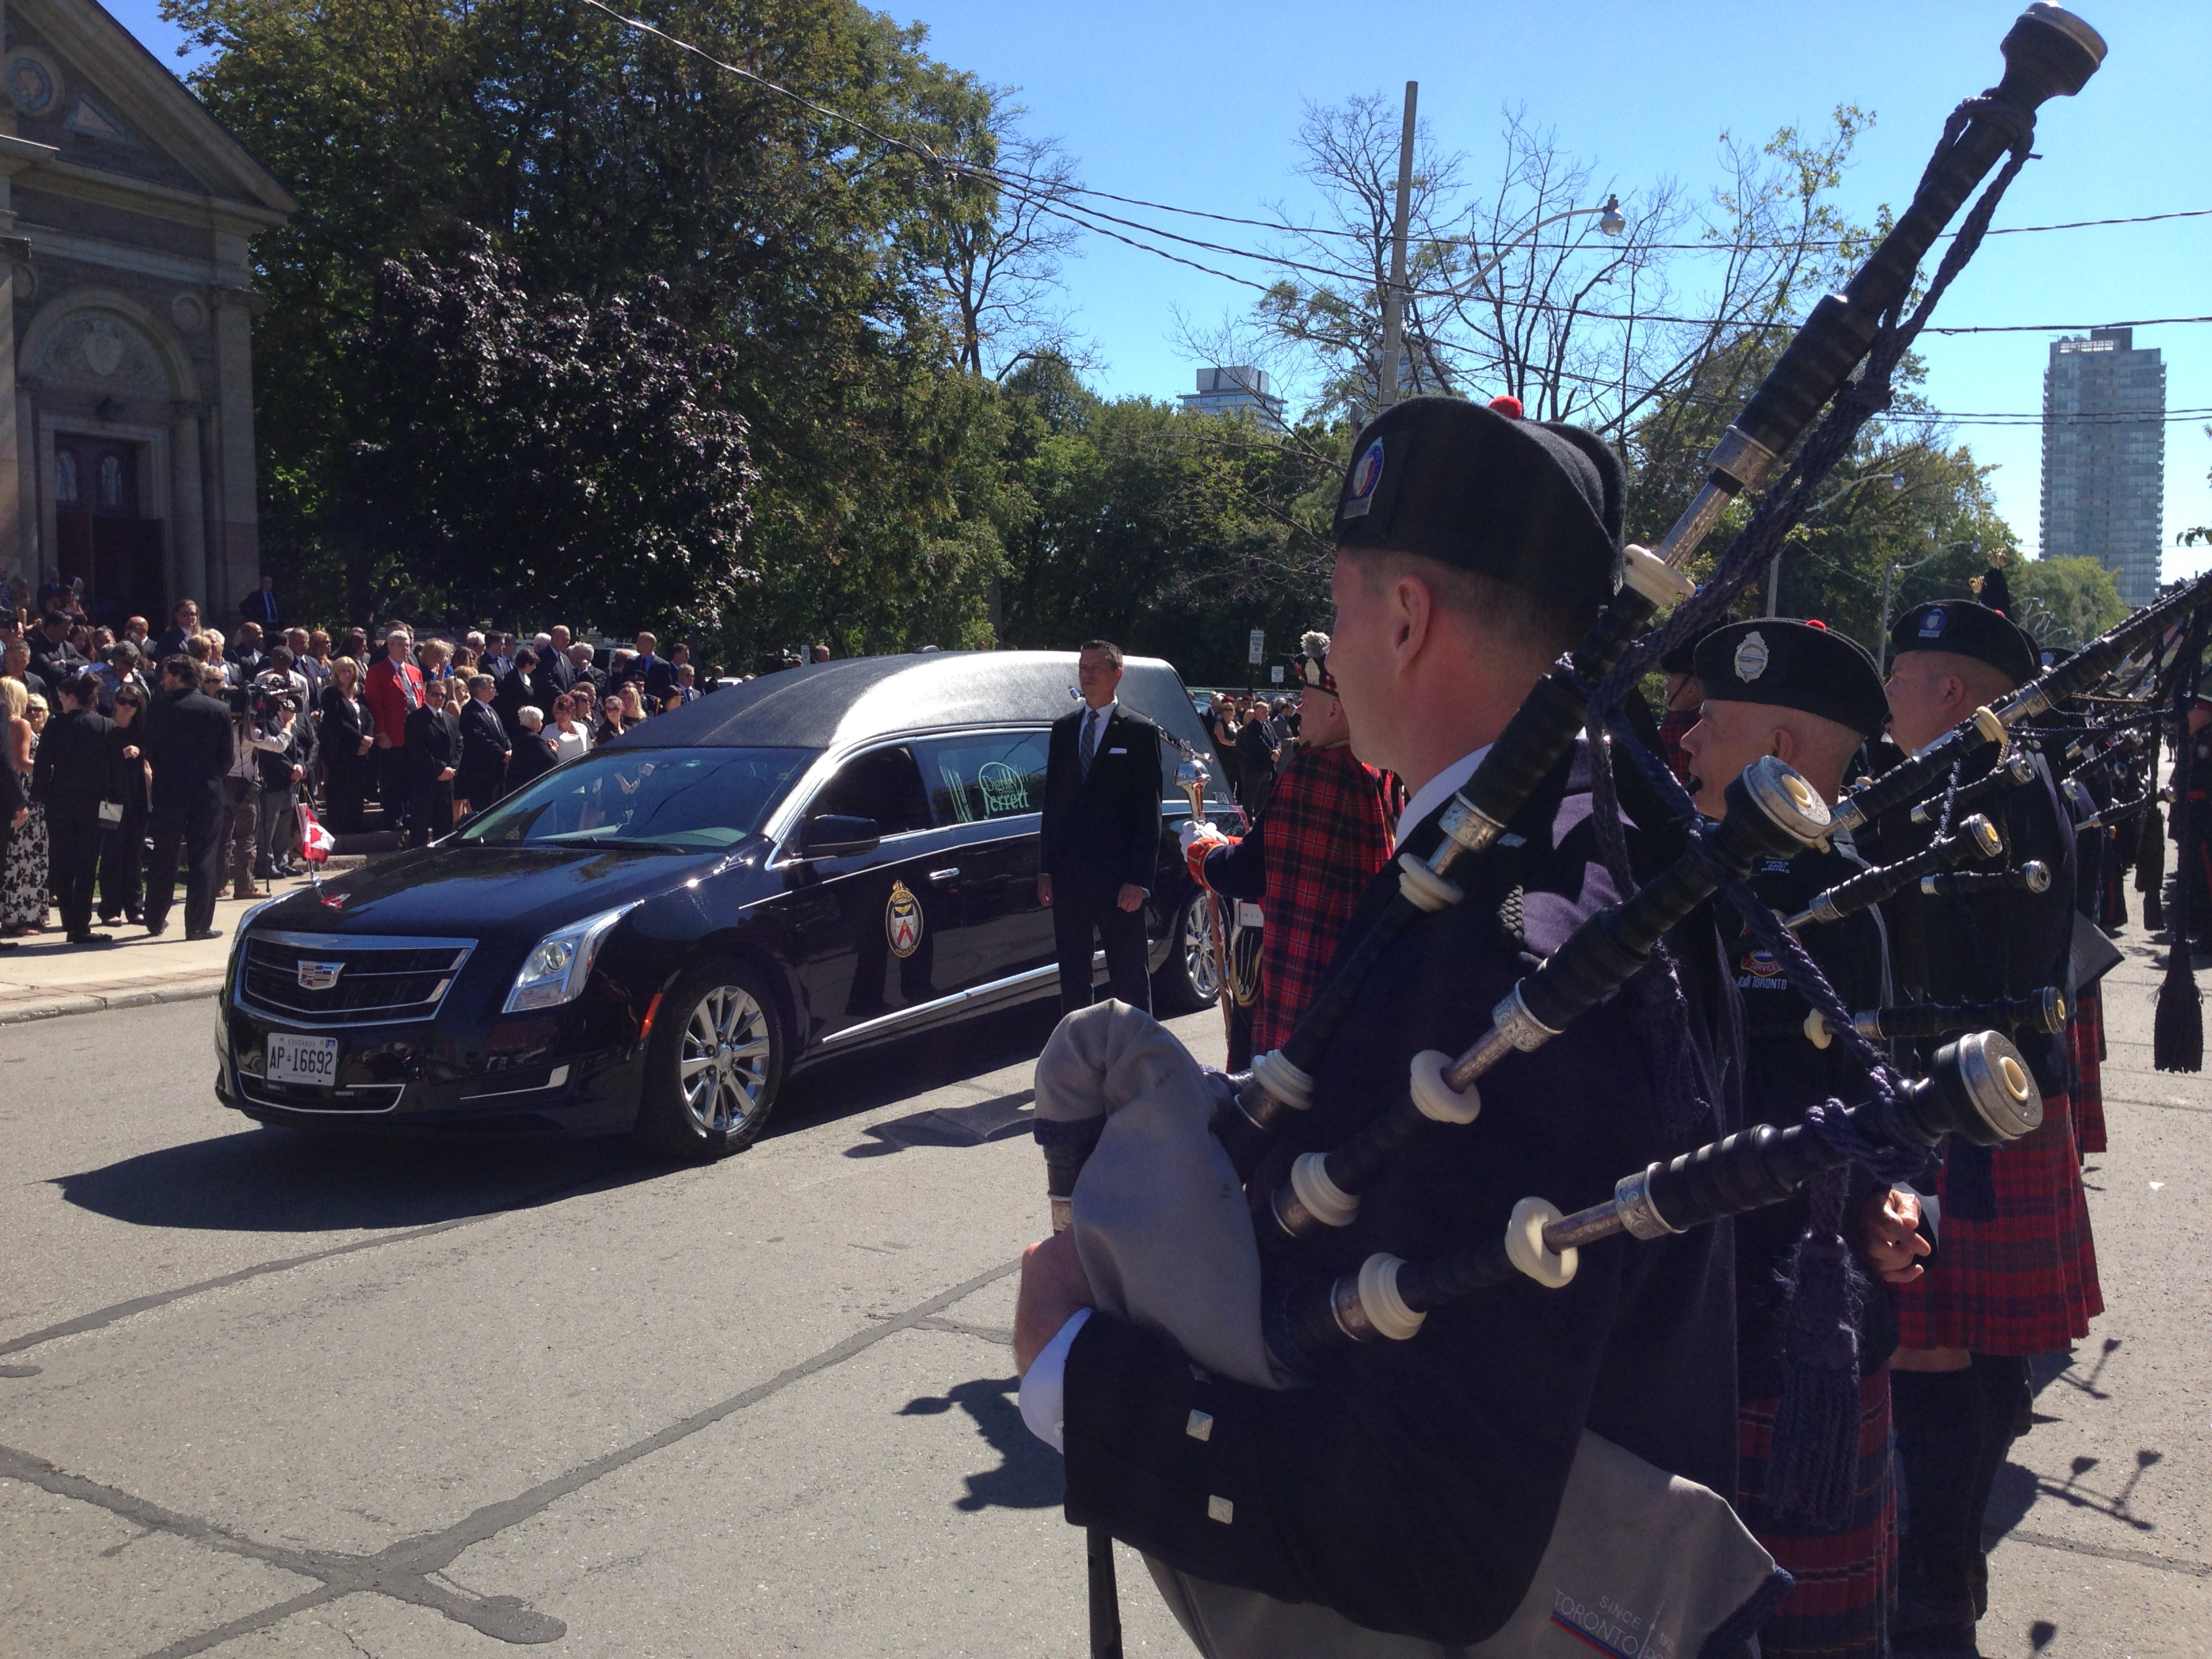 The funeral cortege for William 'Bill' McCormack arrived at St. Paul's Basilica, on Power Street near Queen and Parliament streets, on Sept. 12, 2016. CITYNEWS/Stephen Boorne